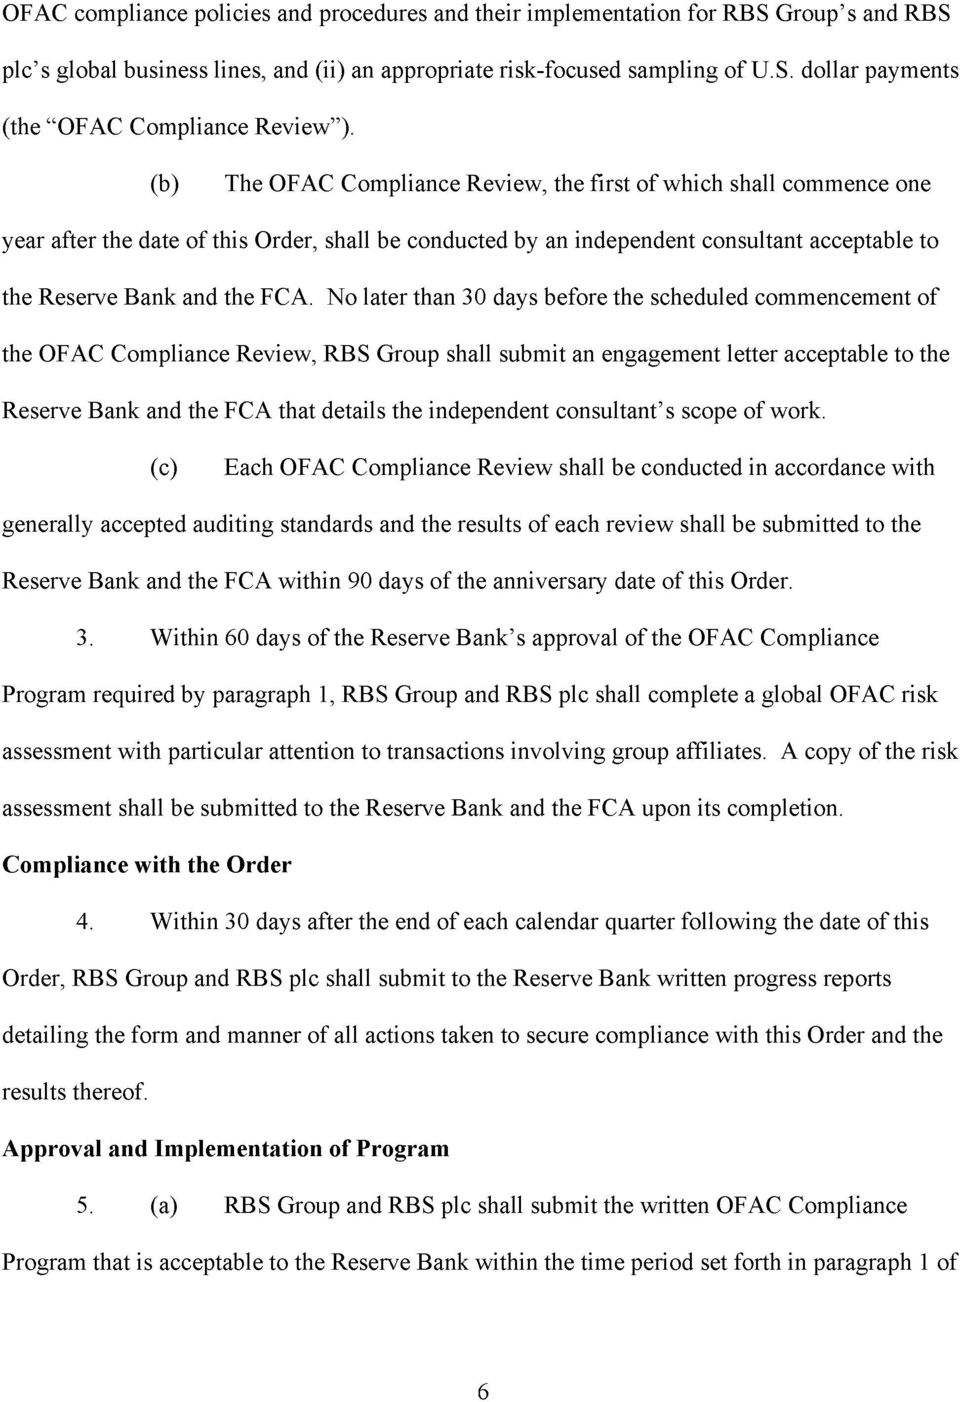 No later than 30 days before the scheduled commencement of the OFAC Compliance Review, RBS Group shall submit an engagement letter acceptable to the Reserve Bank and the FCA that details the